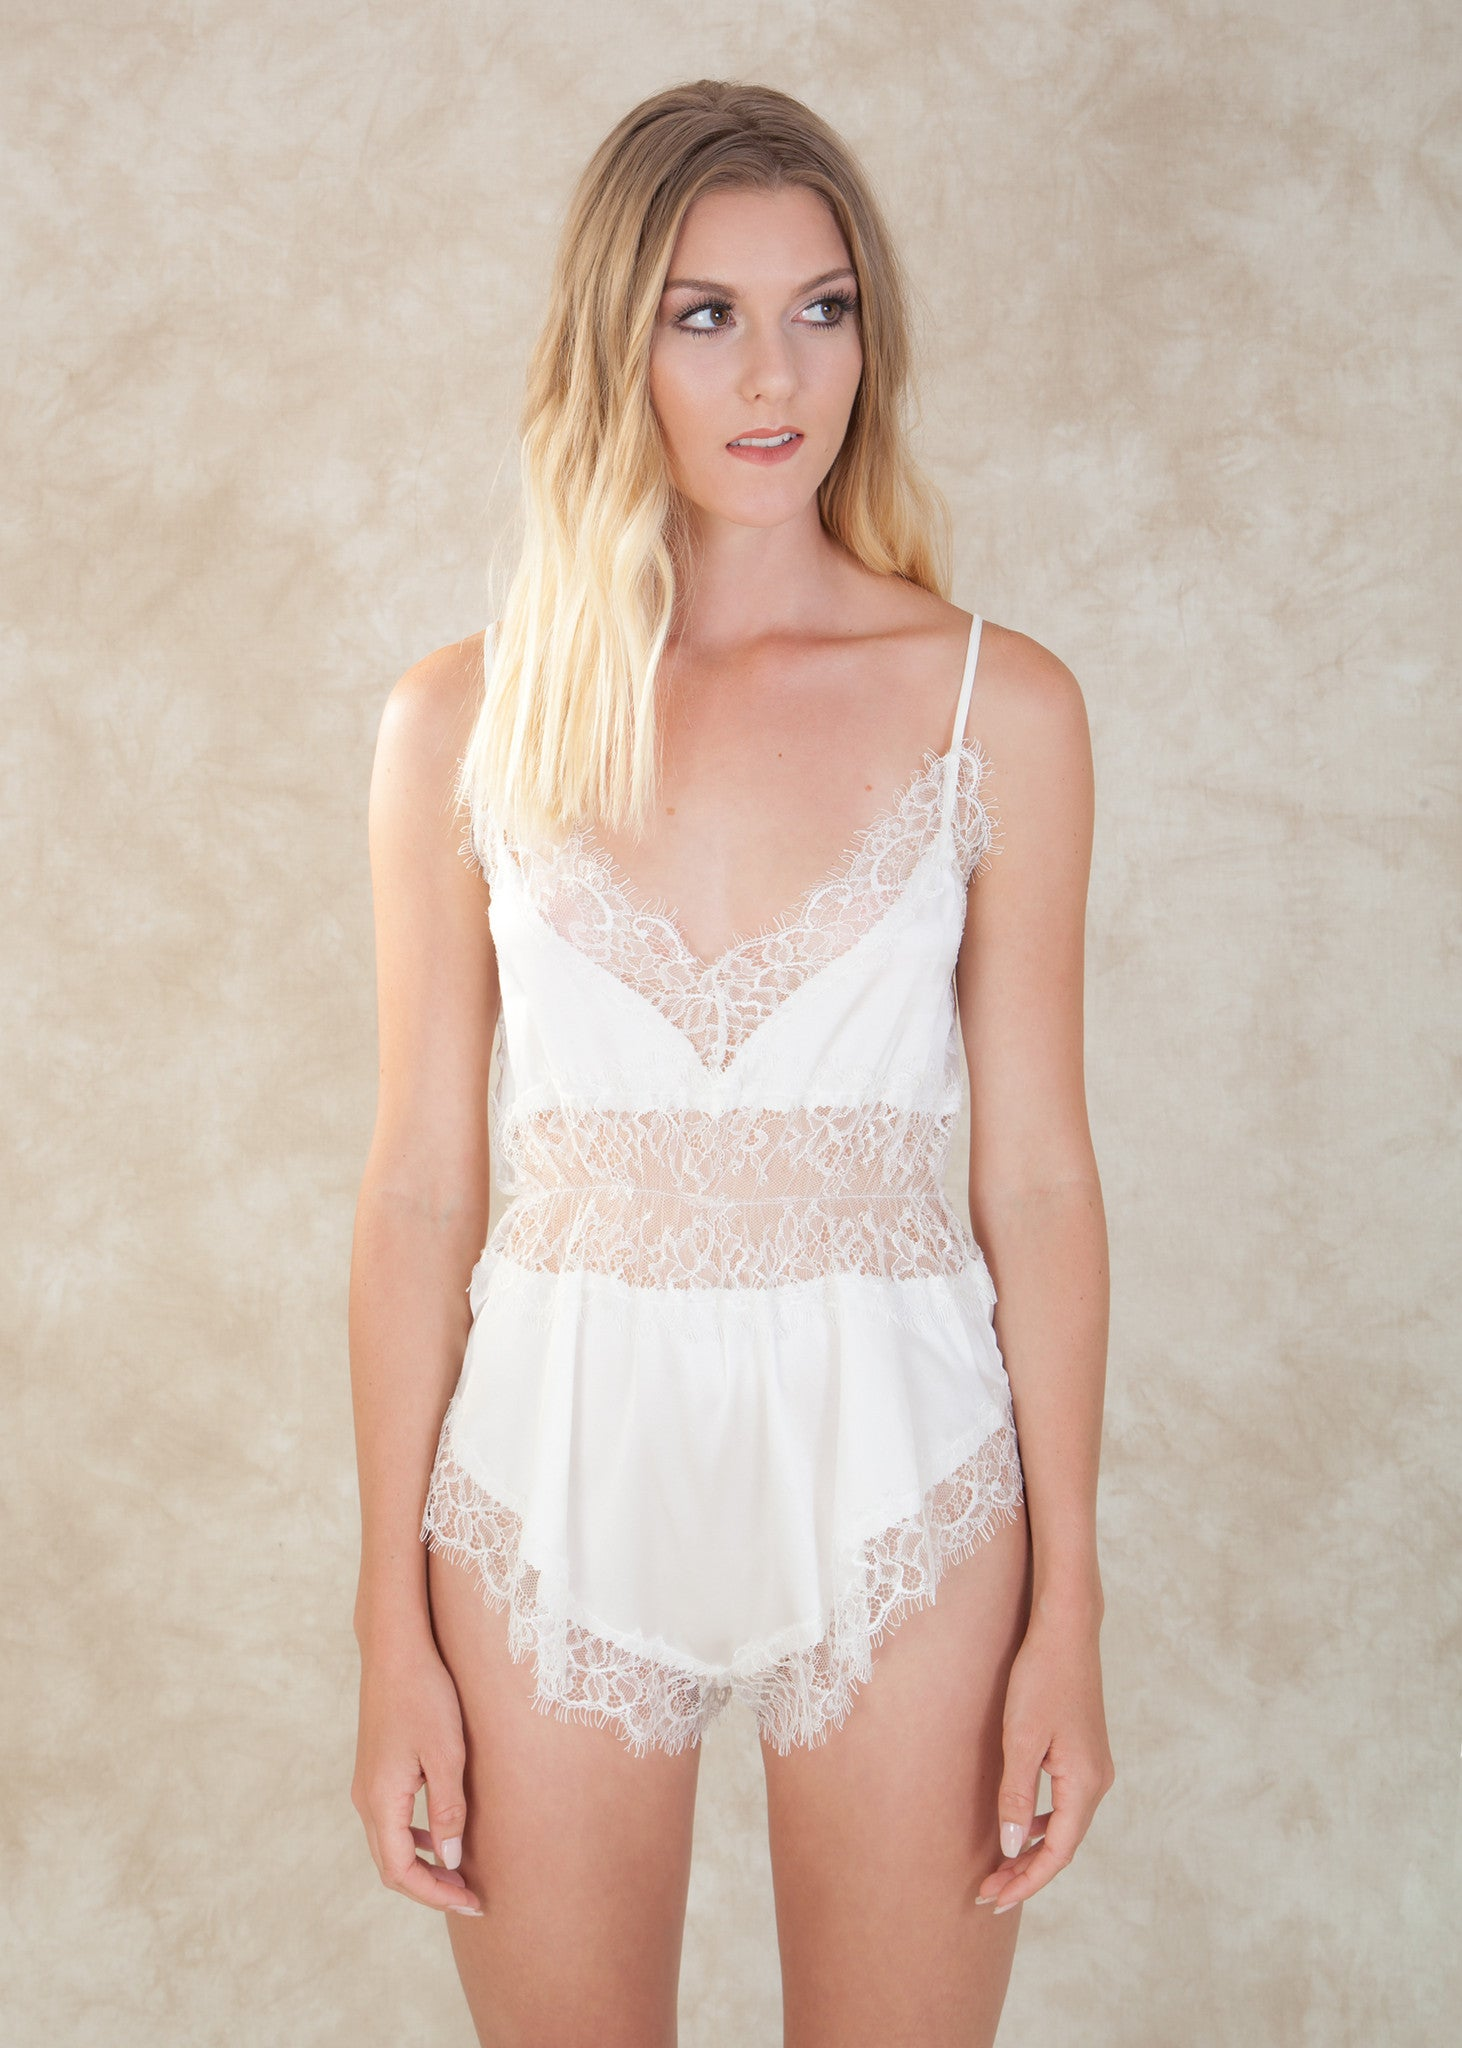 cdf19e31a By Salua. This exquisite romper is made with stretch silk and delicate  eyelash lace.